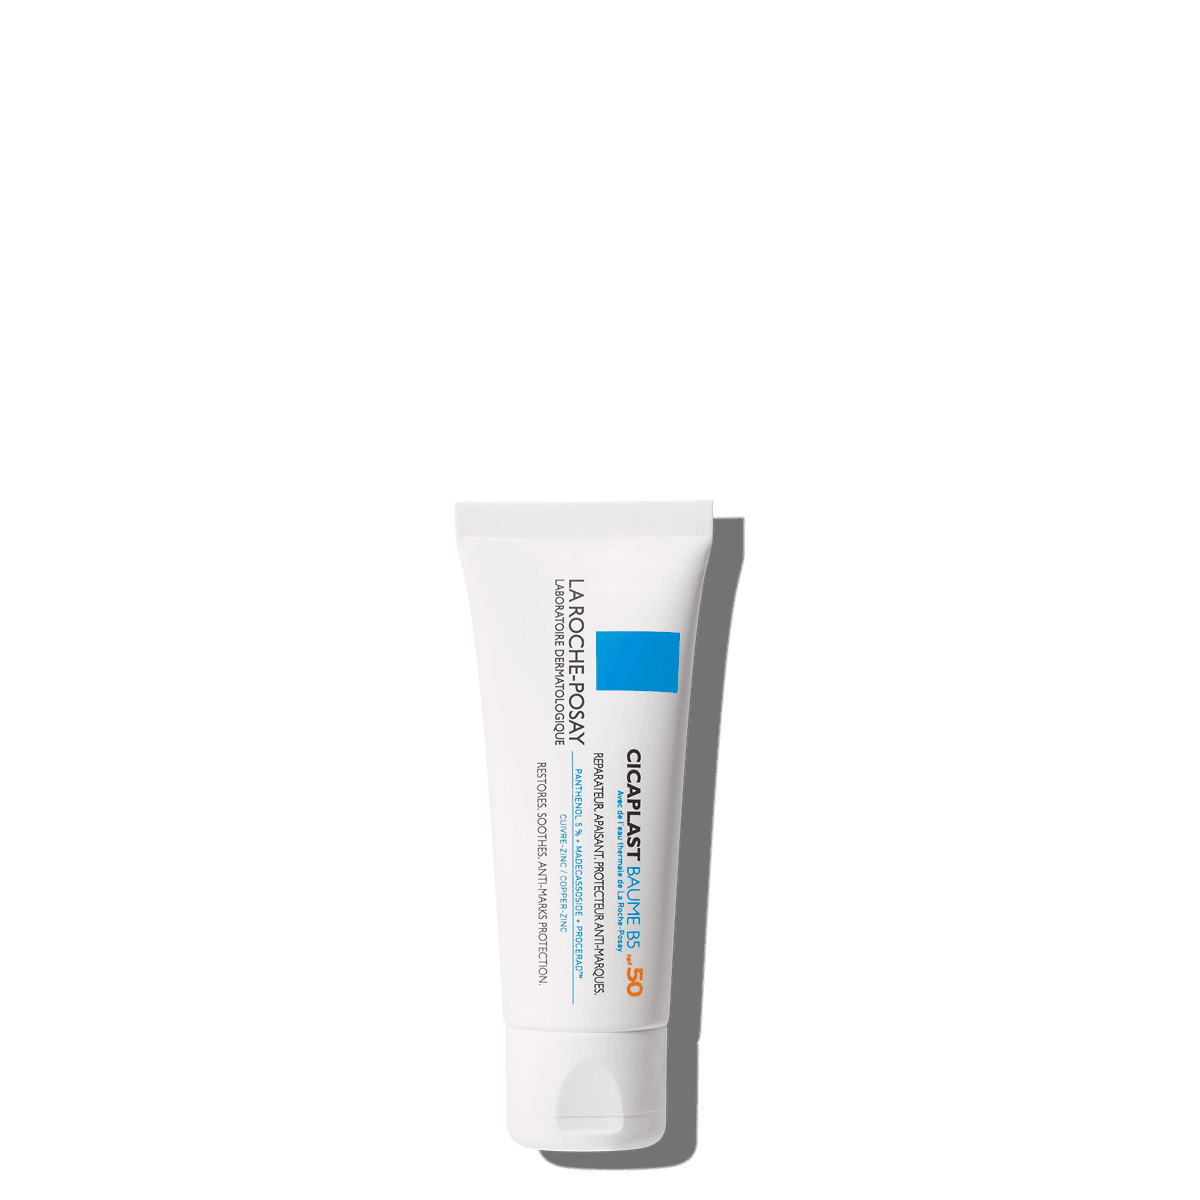 La Roche Posay ProductPage Damaged Cicaplast Baume B5 Spf50 40ml 33378